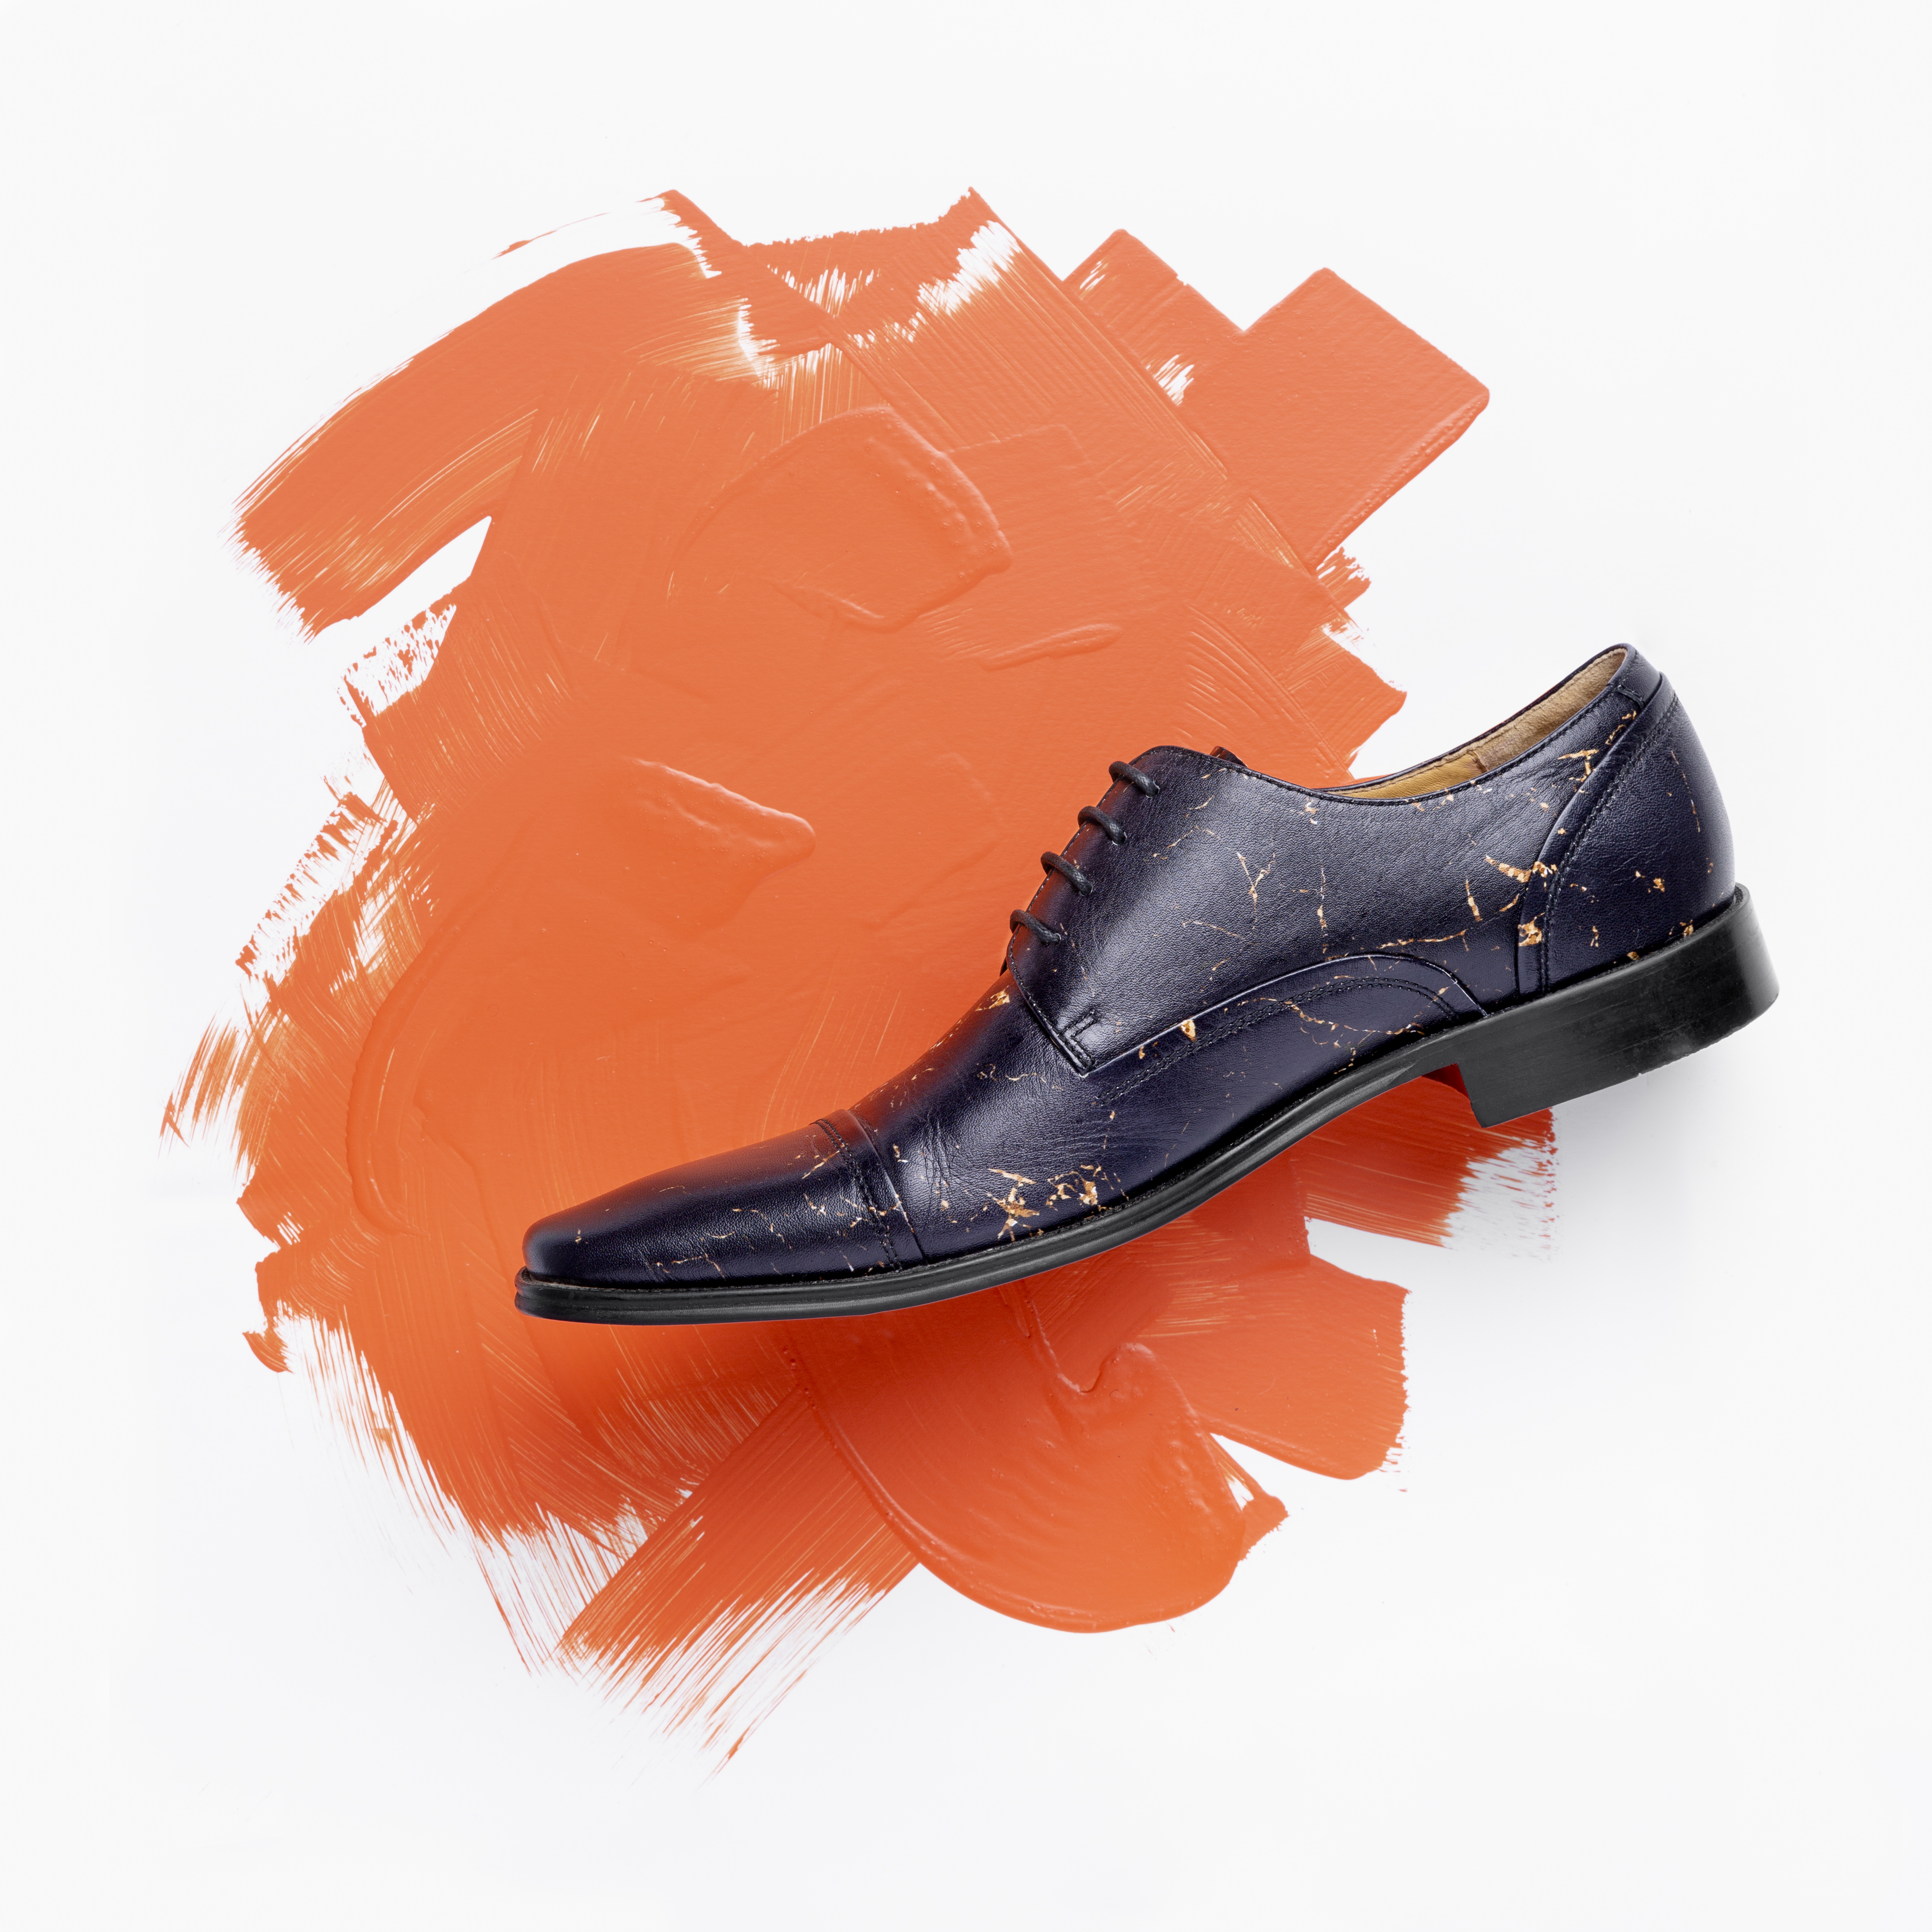 Thatcher Finch patterned leather footwear